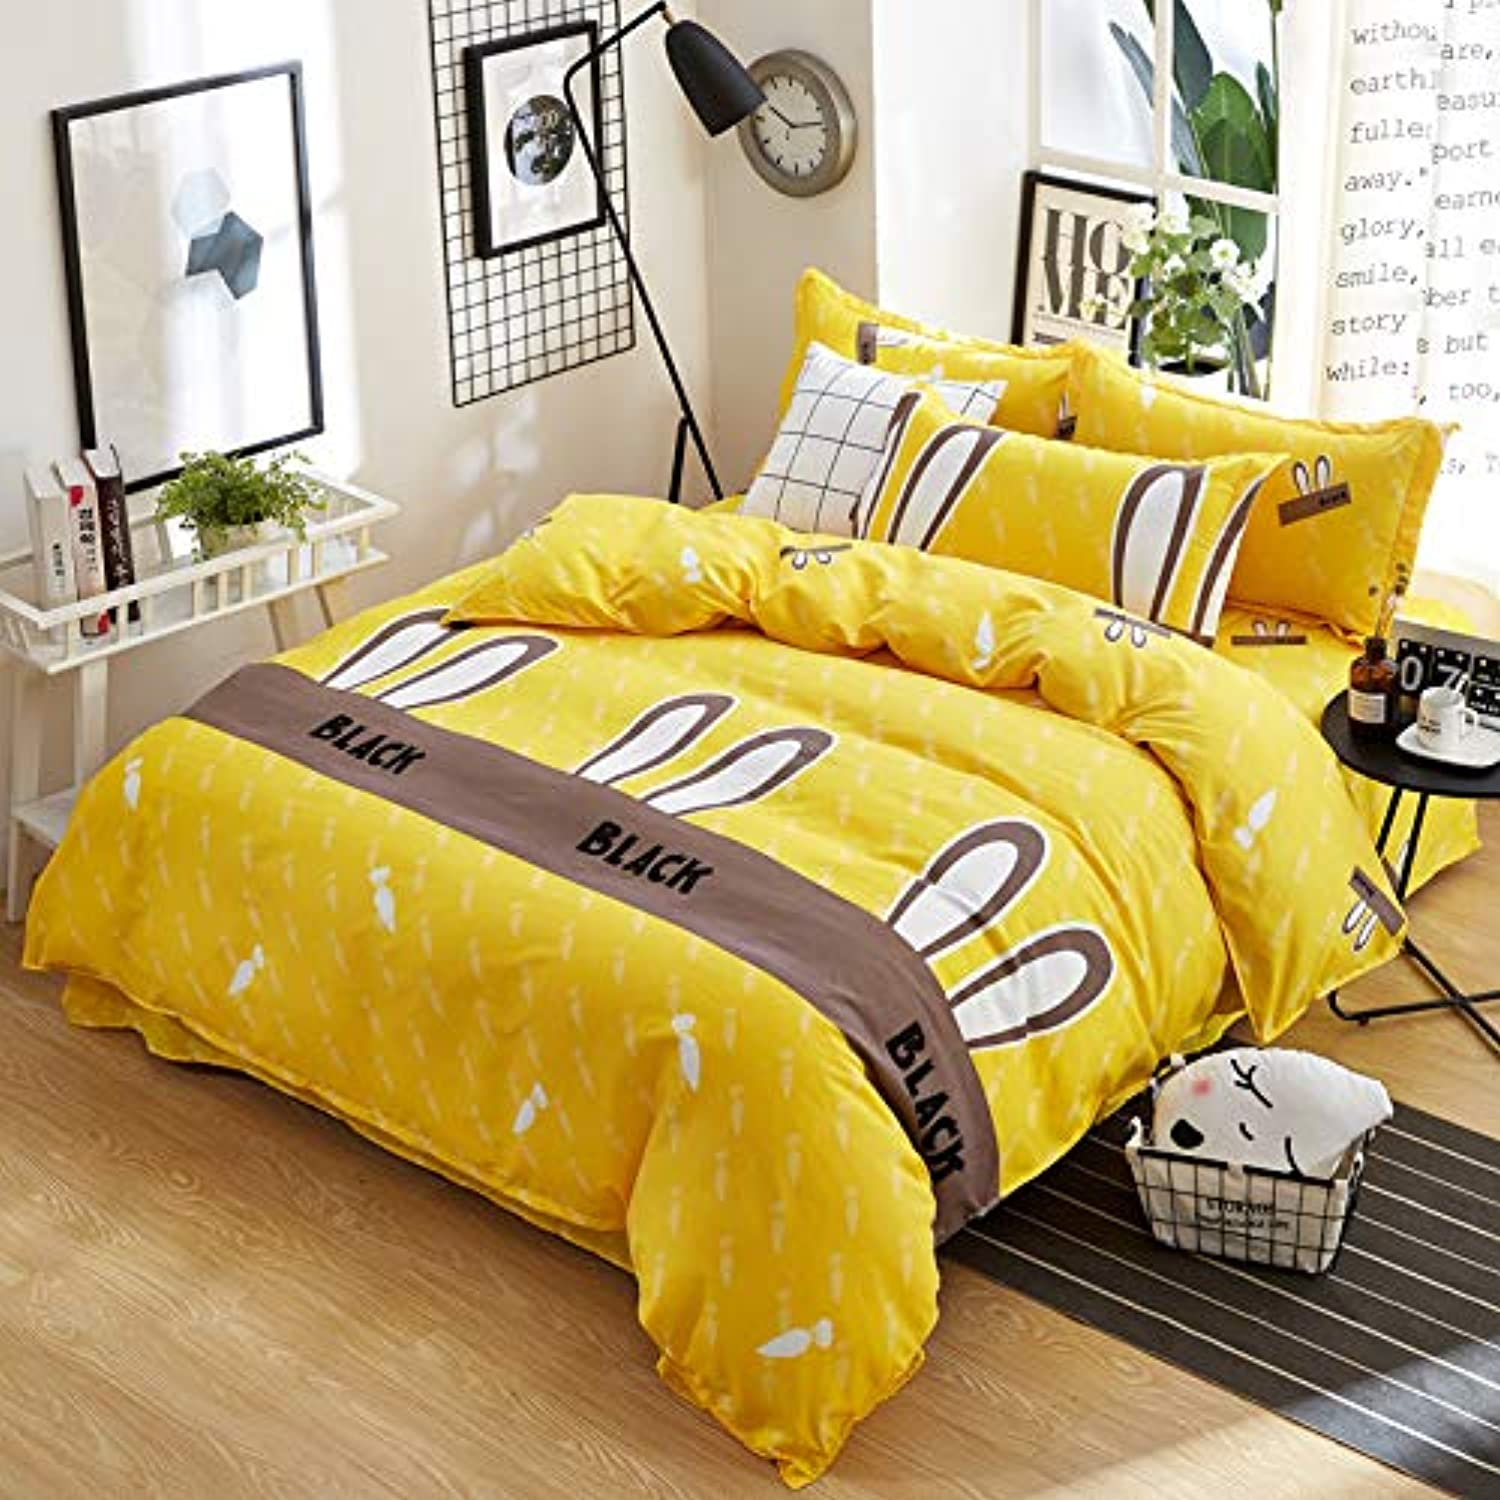 JX Lecal Premium 4 Piece Set, Rabbit Ears Carred White Print Double Sided Duvet Cover, Yellow Deep Pocket Sheets, Size  Twin